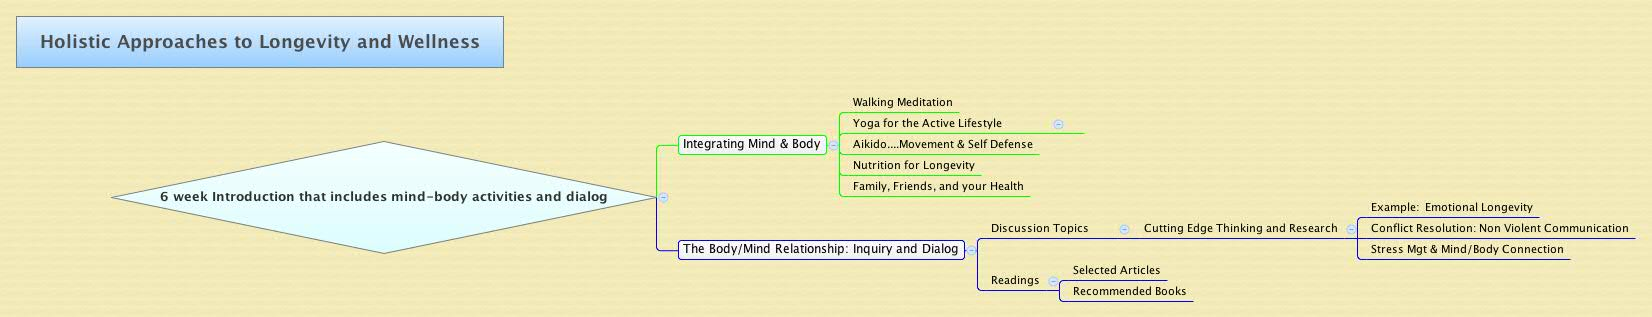 Holistic Approaches to Longevity and Wellness - XMind - Mind